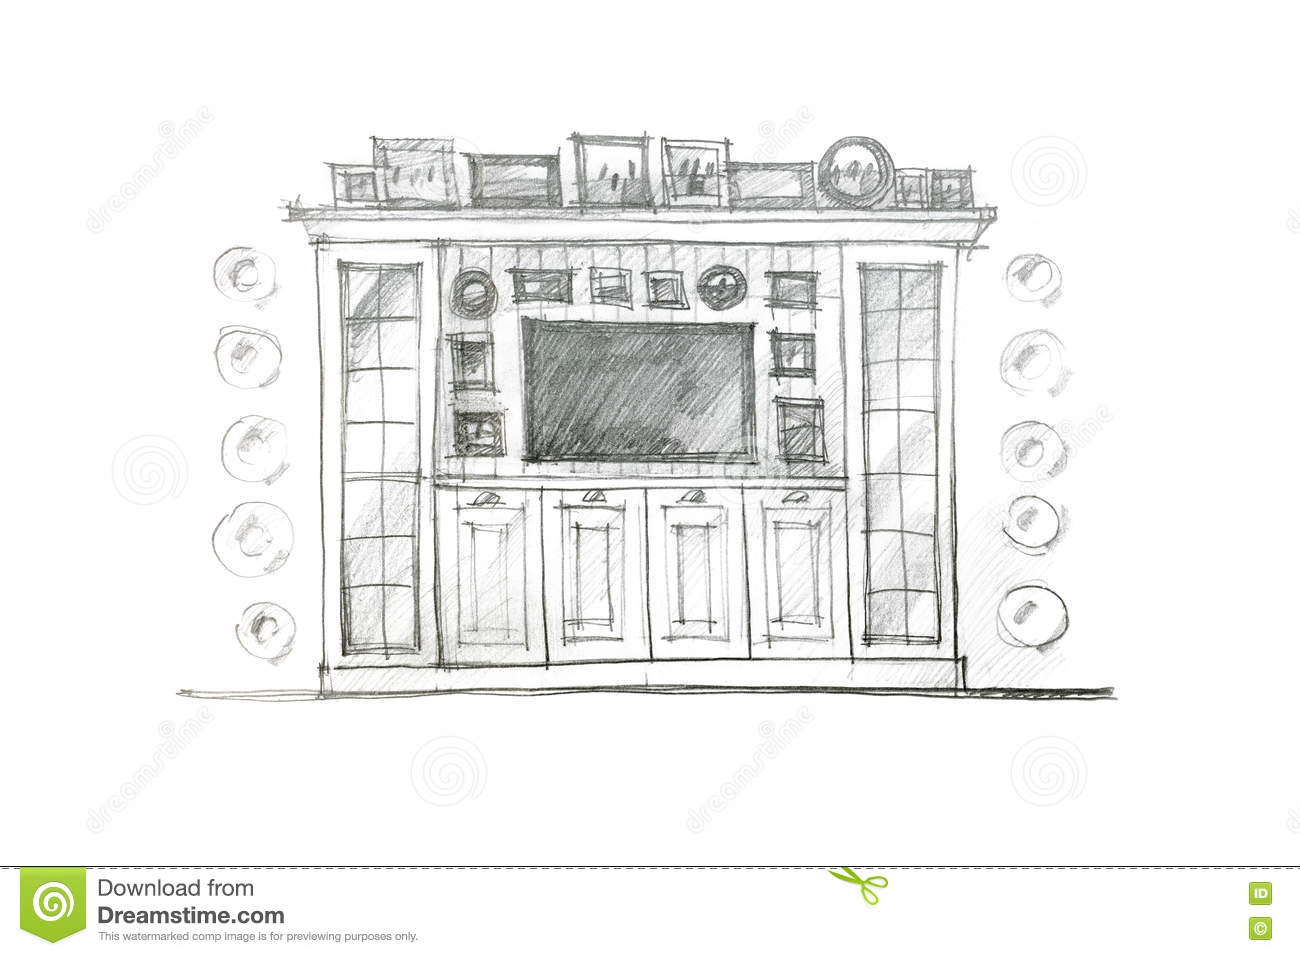 Living room drawing design - Pencil Drawing Design Of A Piece Of Furniture For Living Room